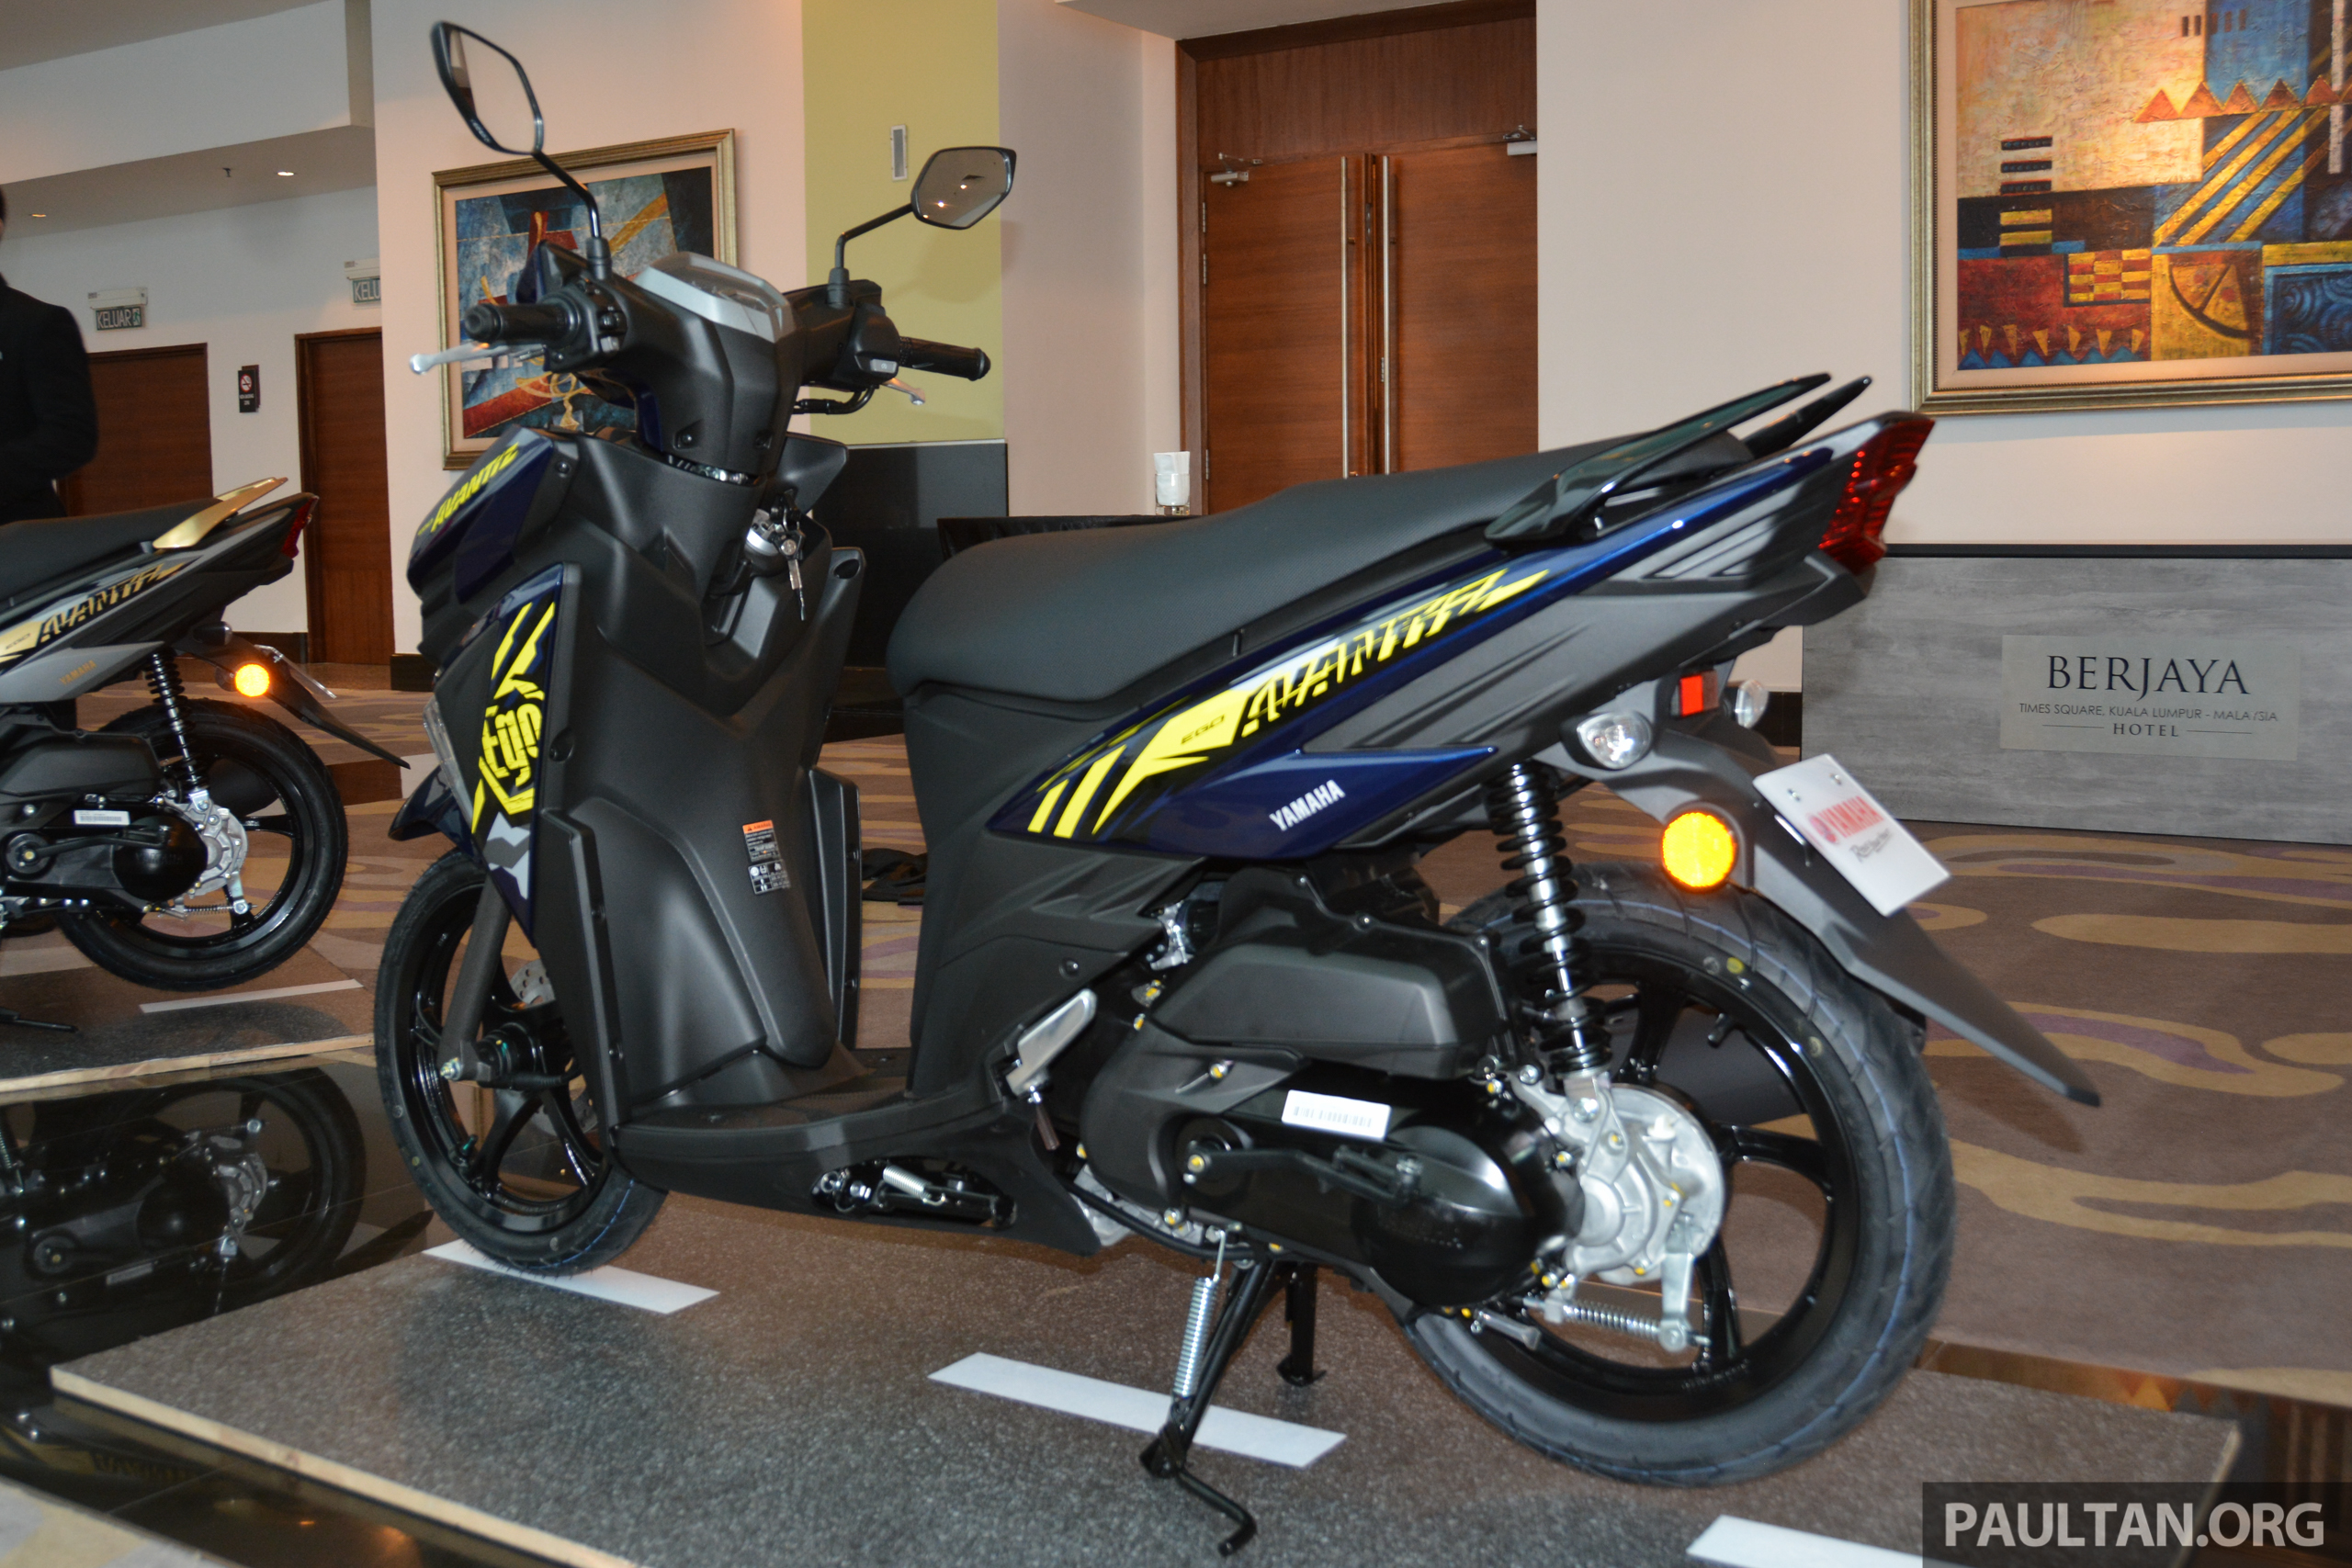 125cc Auto Electrical Wiring Diagram Rondaful Motion Led Yamaha Lancar Ego Avantiz Harga Dari Rm5 700 Paul